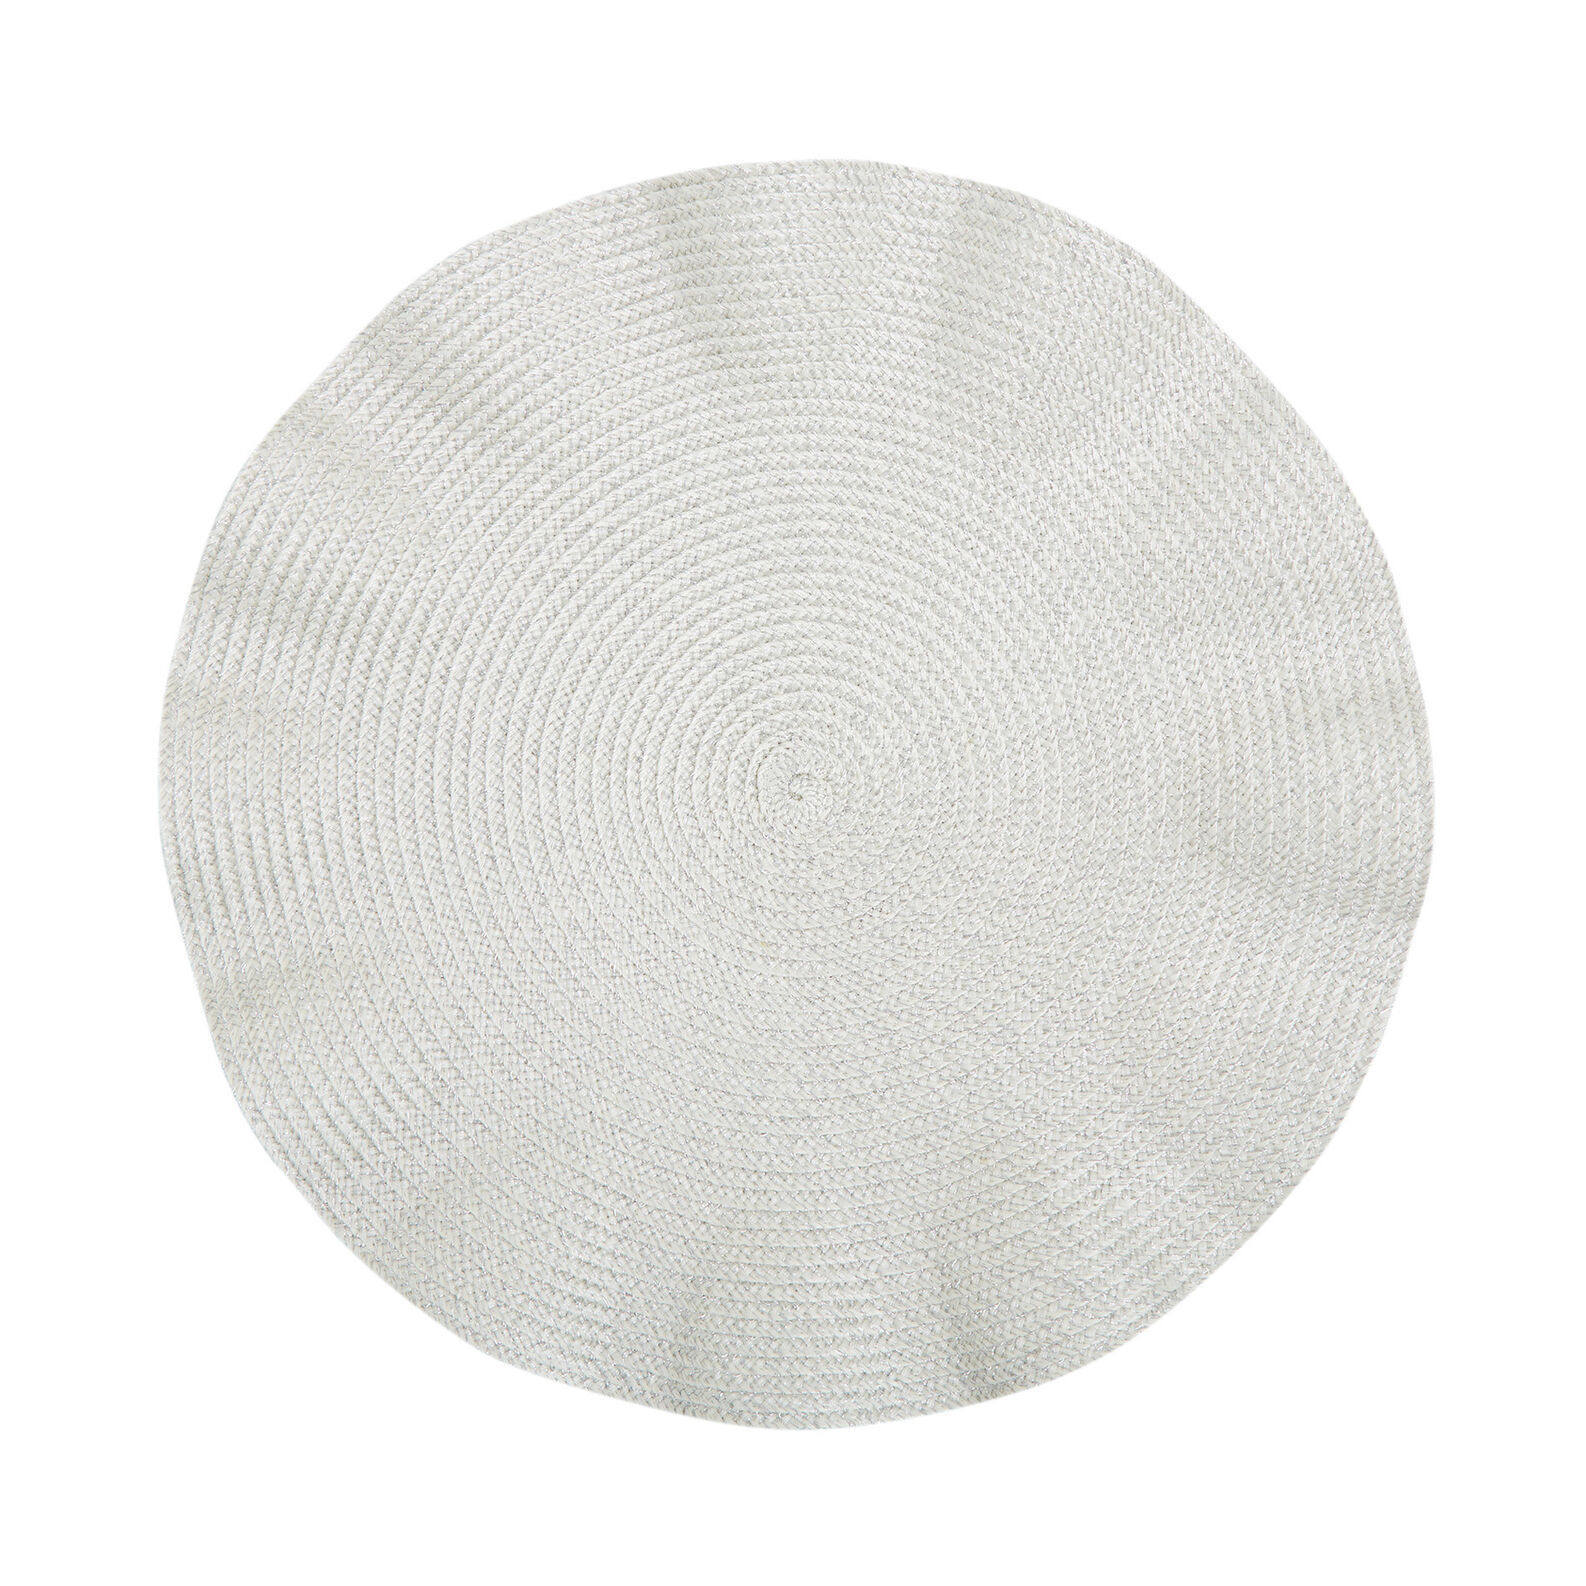 Table mat in wavy plastic